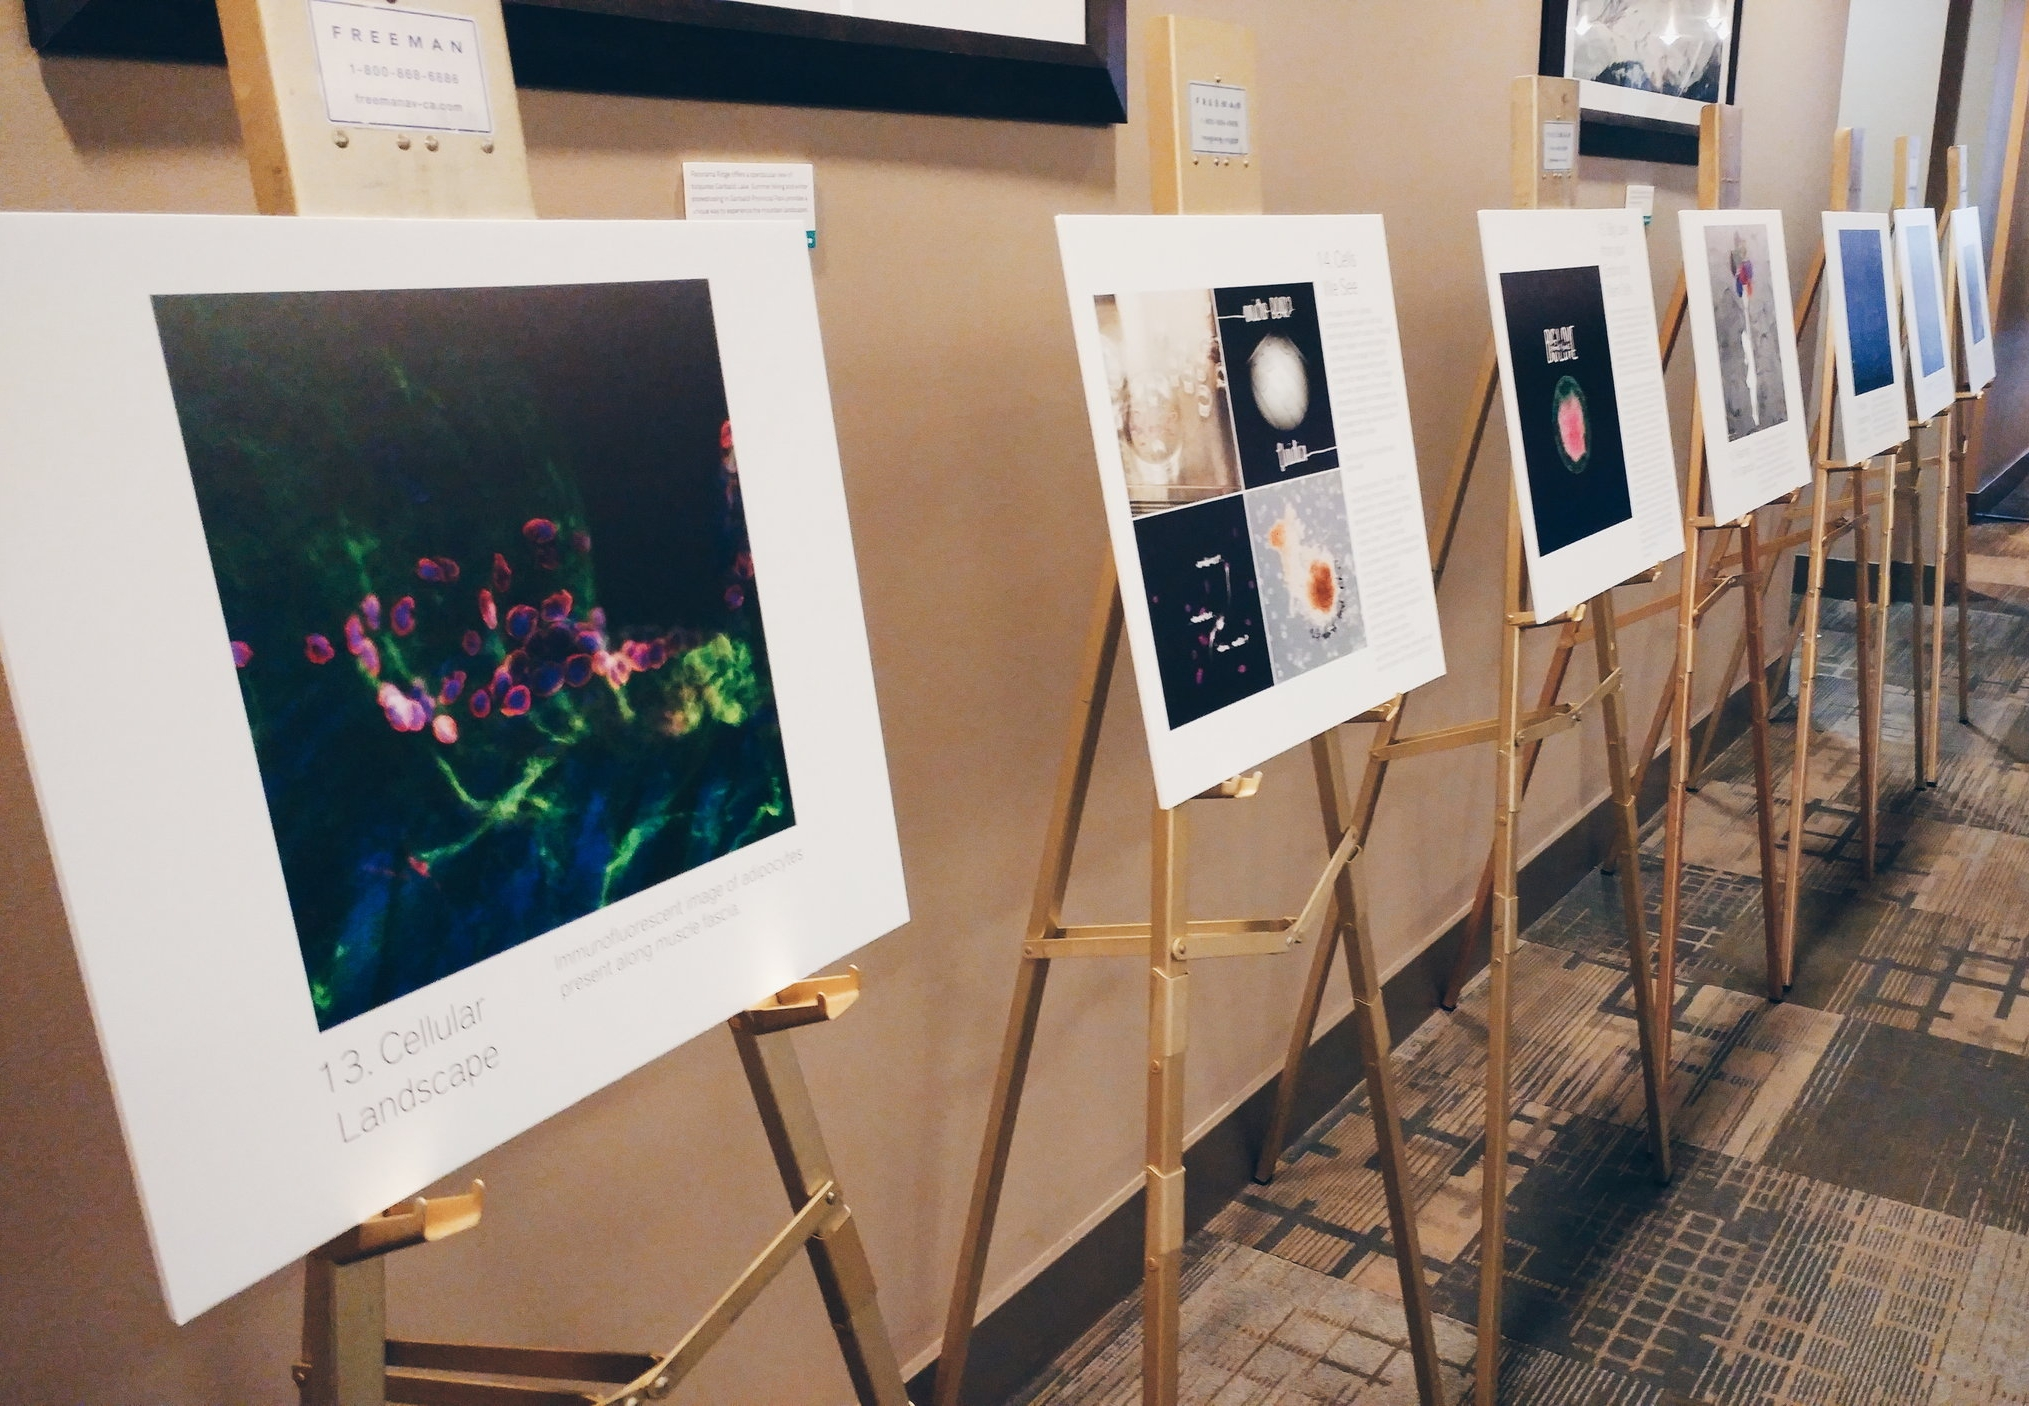 Multiple filters for stem cell research at Canadian stem cell conference. - Guest blog post for The Niche, renowned stem cell blog by scientist Dr. Paul Knoepfler.